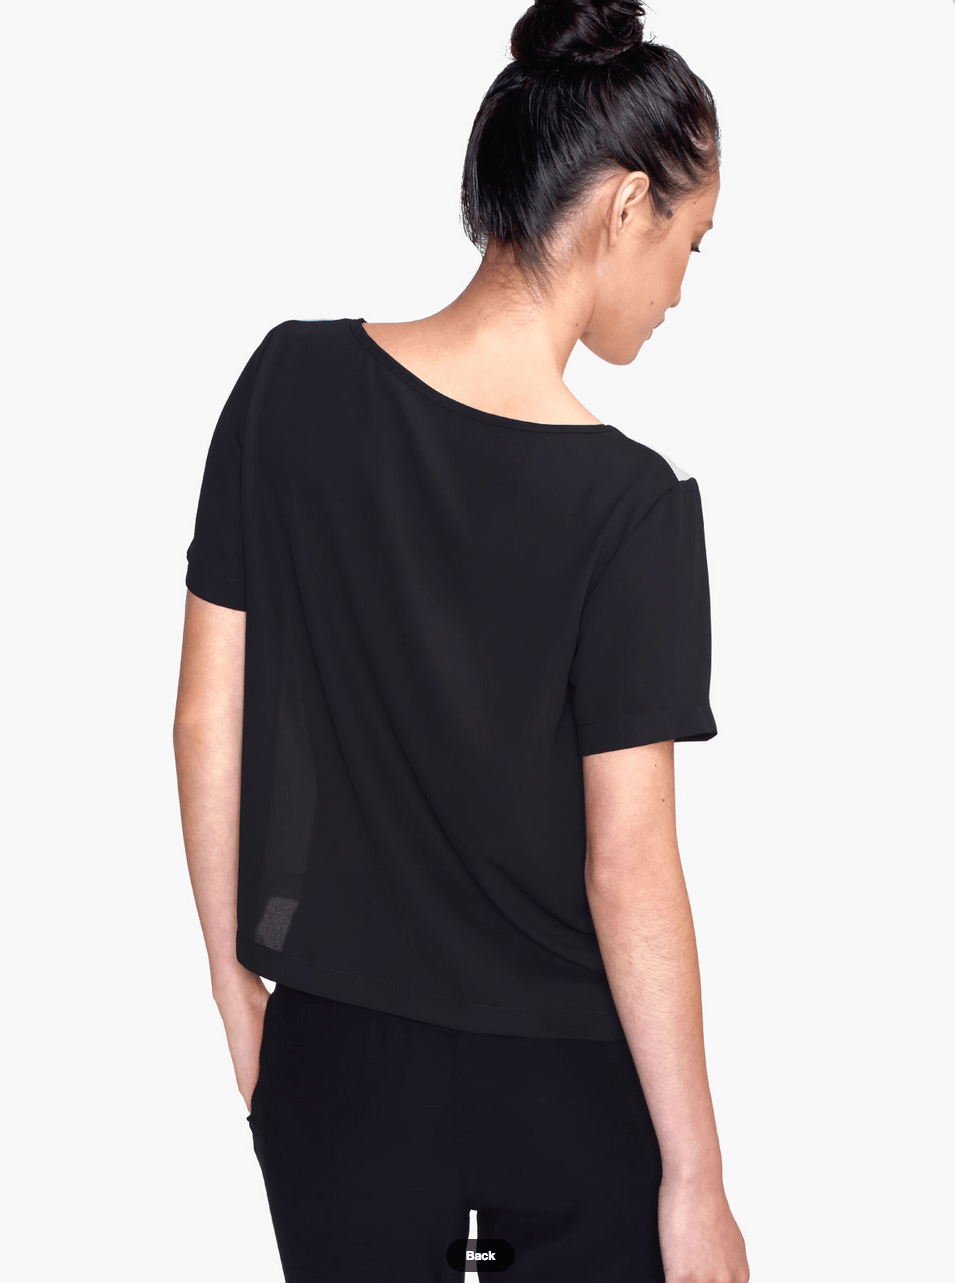 Geometric Top - Chiffon Top - Women Blouse - Modern Clothing-TheGretest